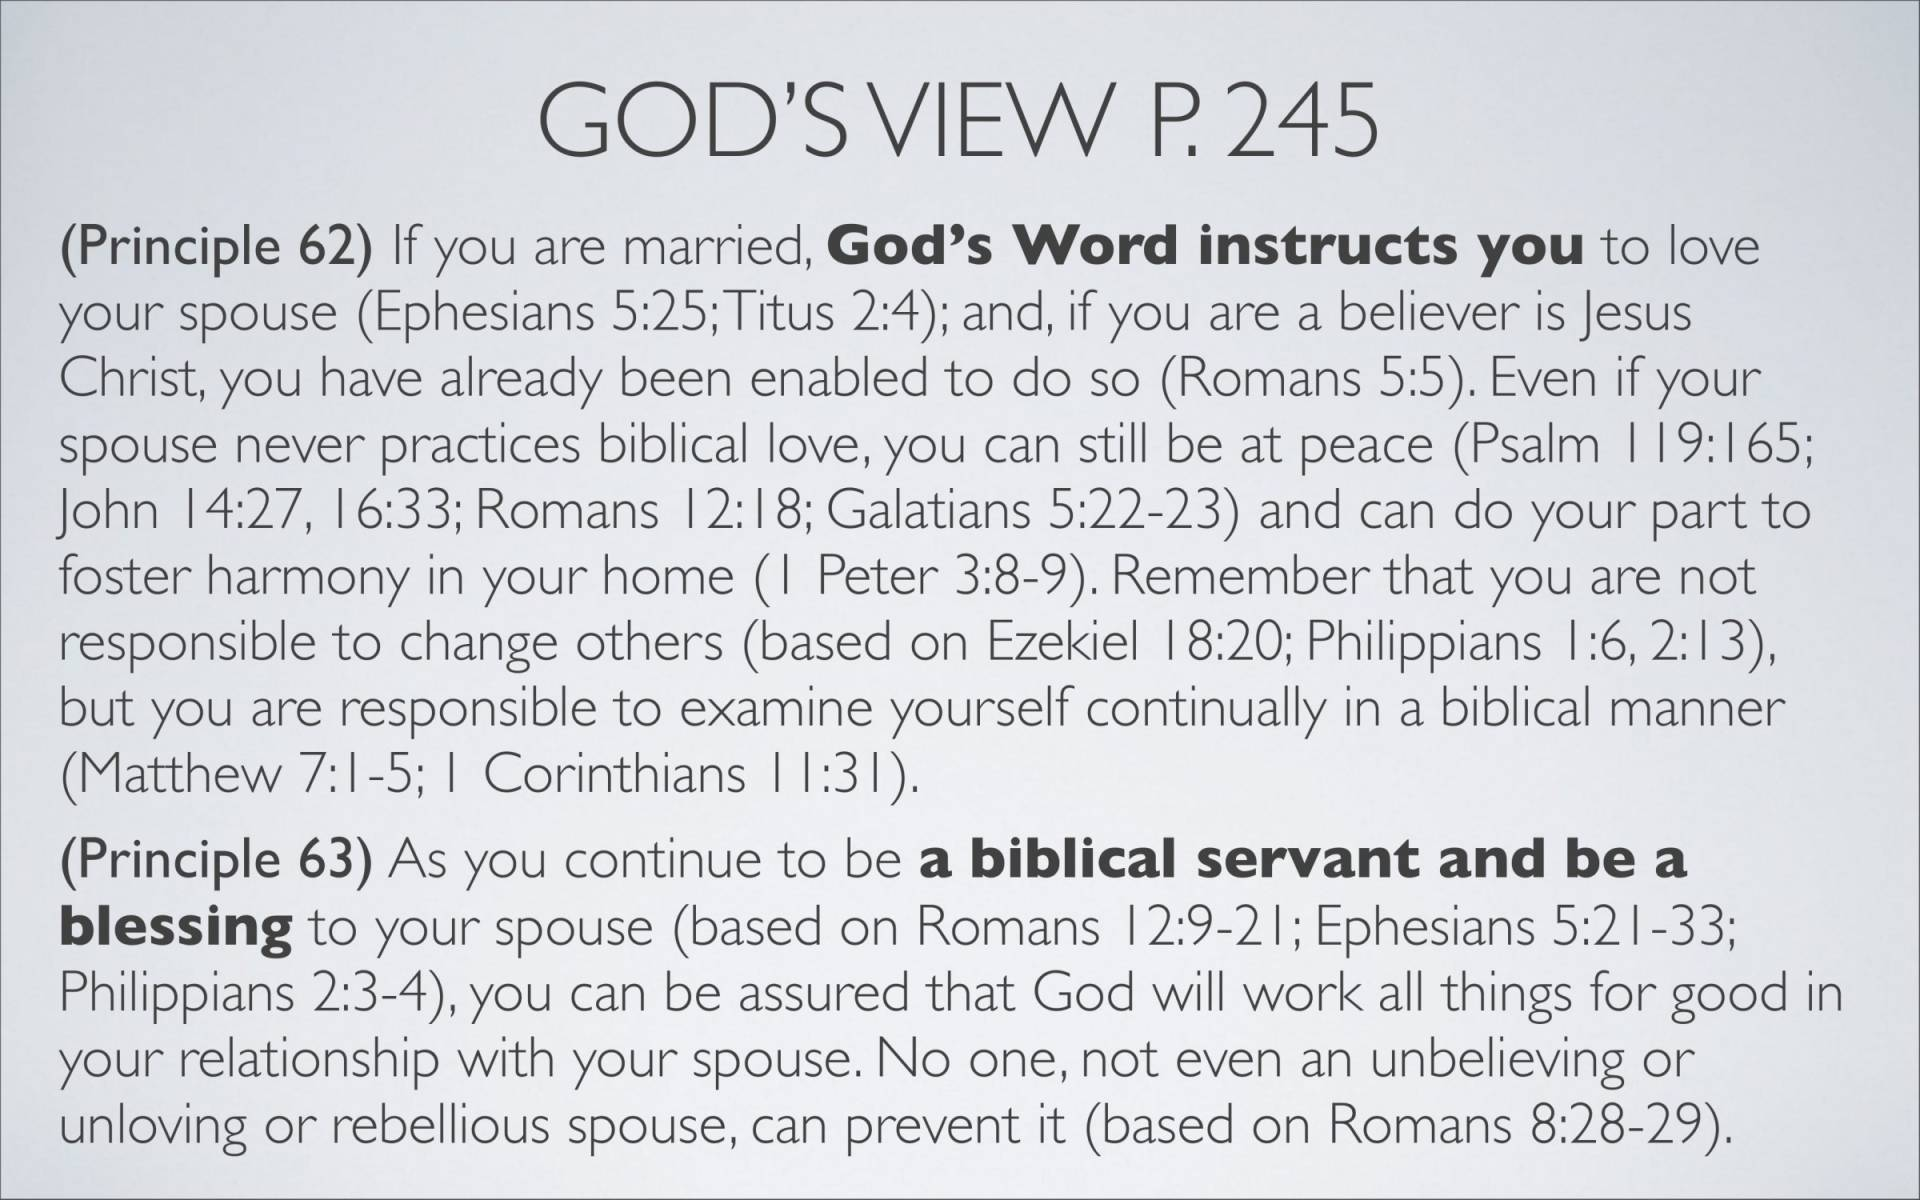 BC&D-37 - Lesson 15-1 - The Marriage Relationship - Husbands-06